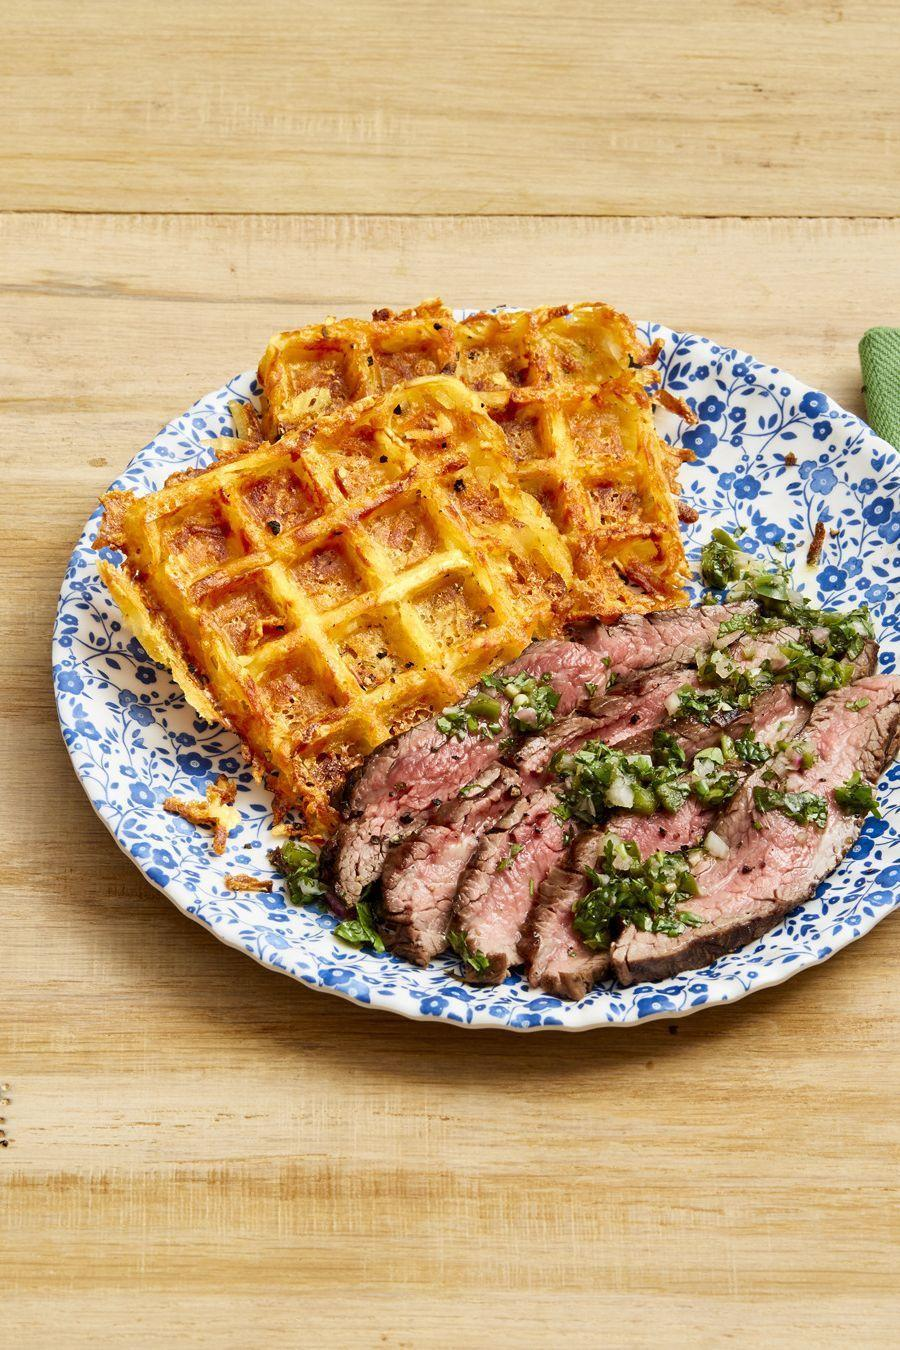 """<p>This sauce gets its bright green hue from a mix of fresh herbs like basil, mint, cilantro, and parsley, plus some heat from a serrano chile pepper. Pair it with thinly sliced flank steak and a side of cheesy waffle hash browns.</p><p><a href=""""https://www.thepioneerwoman.com/food-cooking/recipes/a32475948/flank-steak-with-cheesy-waffle-hash-browns-recipe/"""" rel=""""nofollow noopener"""" target=""""_blank"""" data-ylk=""""slk:Get Ree's recipe."""" class=""""link rapid-noclick-resp""""><strong>Get Ree's recipe.</strong></a></p><p><a class=""""link rapid-noclick-resp"""" href=""""https://go.redirectingat.com?id=74968X1596630&url=https%3A%2F%2Fwww.walmart.com%2Fbrowse%2Fhome%2Fwaffle-makers%2F4044_90548_90546_4828_9307475&sref=https%3A%2F%2Fwww.thepioneerwoman.com%2Ffood-cooking%2Frecipes%2Fg36383850%2Fsteak-sauce-recipes%2F"""" rel=""""nofollow noopener"""" target=""""_blank"""" data-ylk=""""slk:SHOP WAFFLE MAKERS"""">SHOP WAFFLE MAKERS</a></p>"""